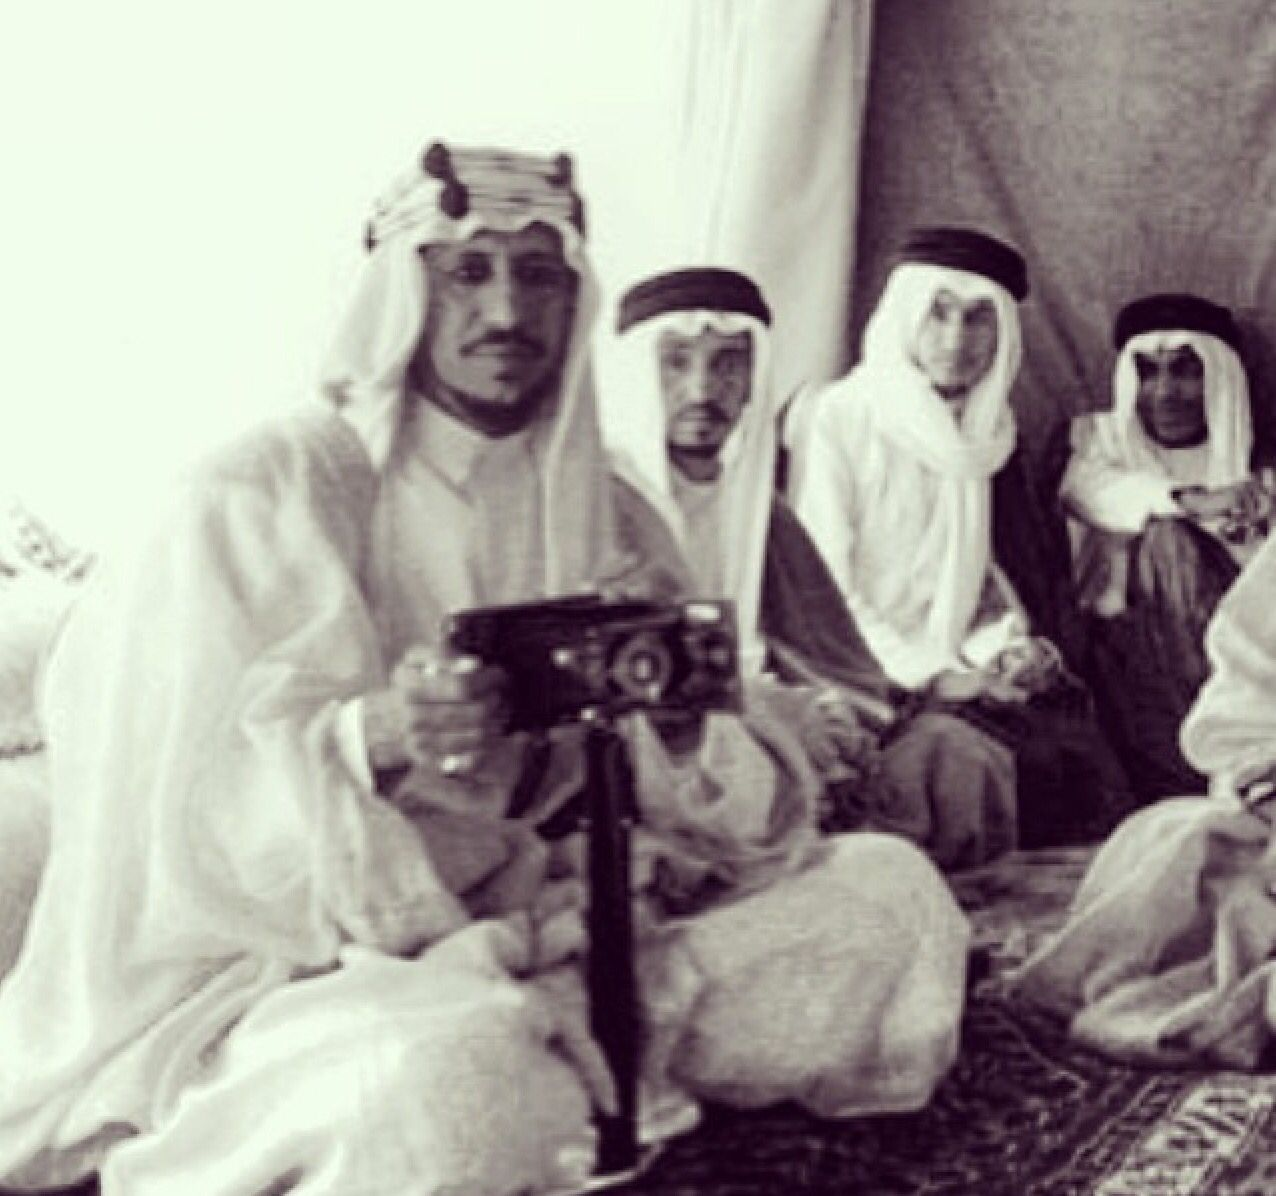 First Camera In Saudi Arabia With My King Saudi Arabia Culture Royal Family Old Photos